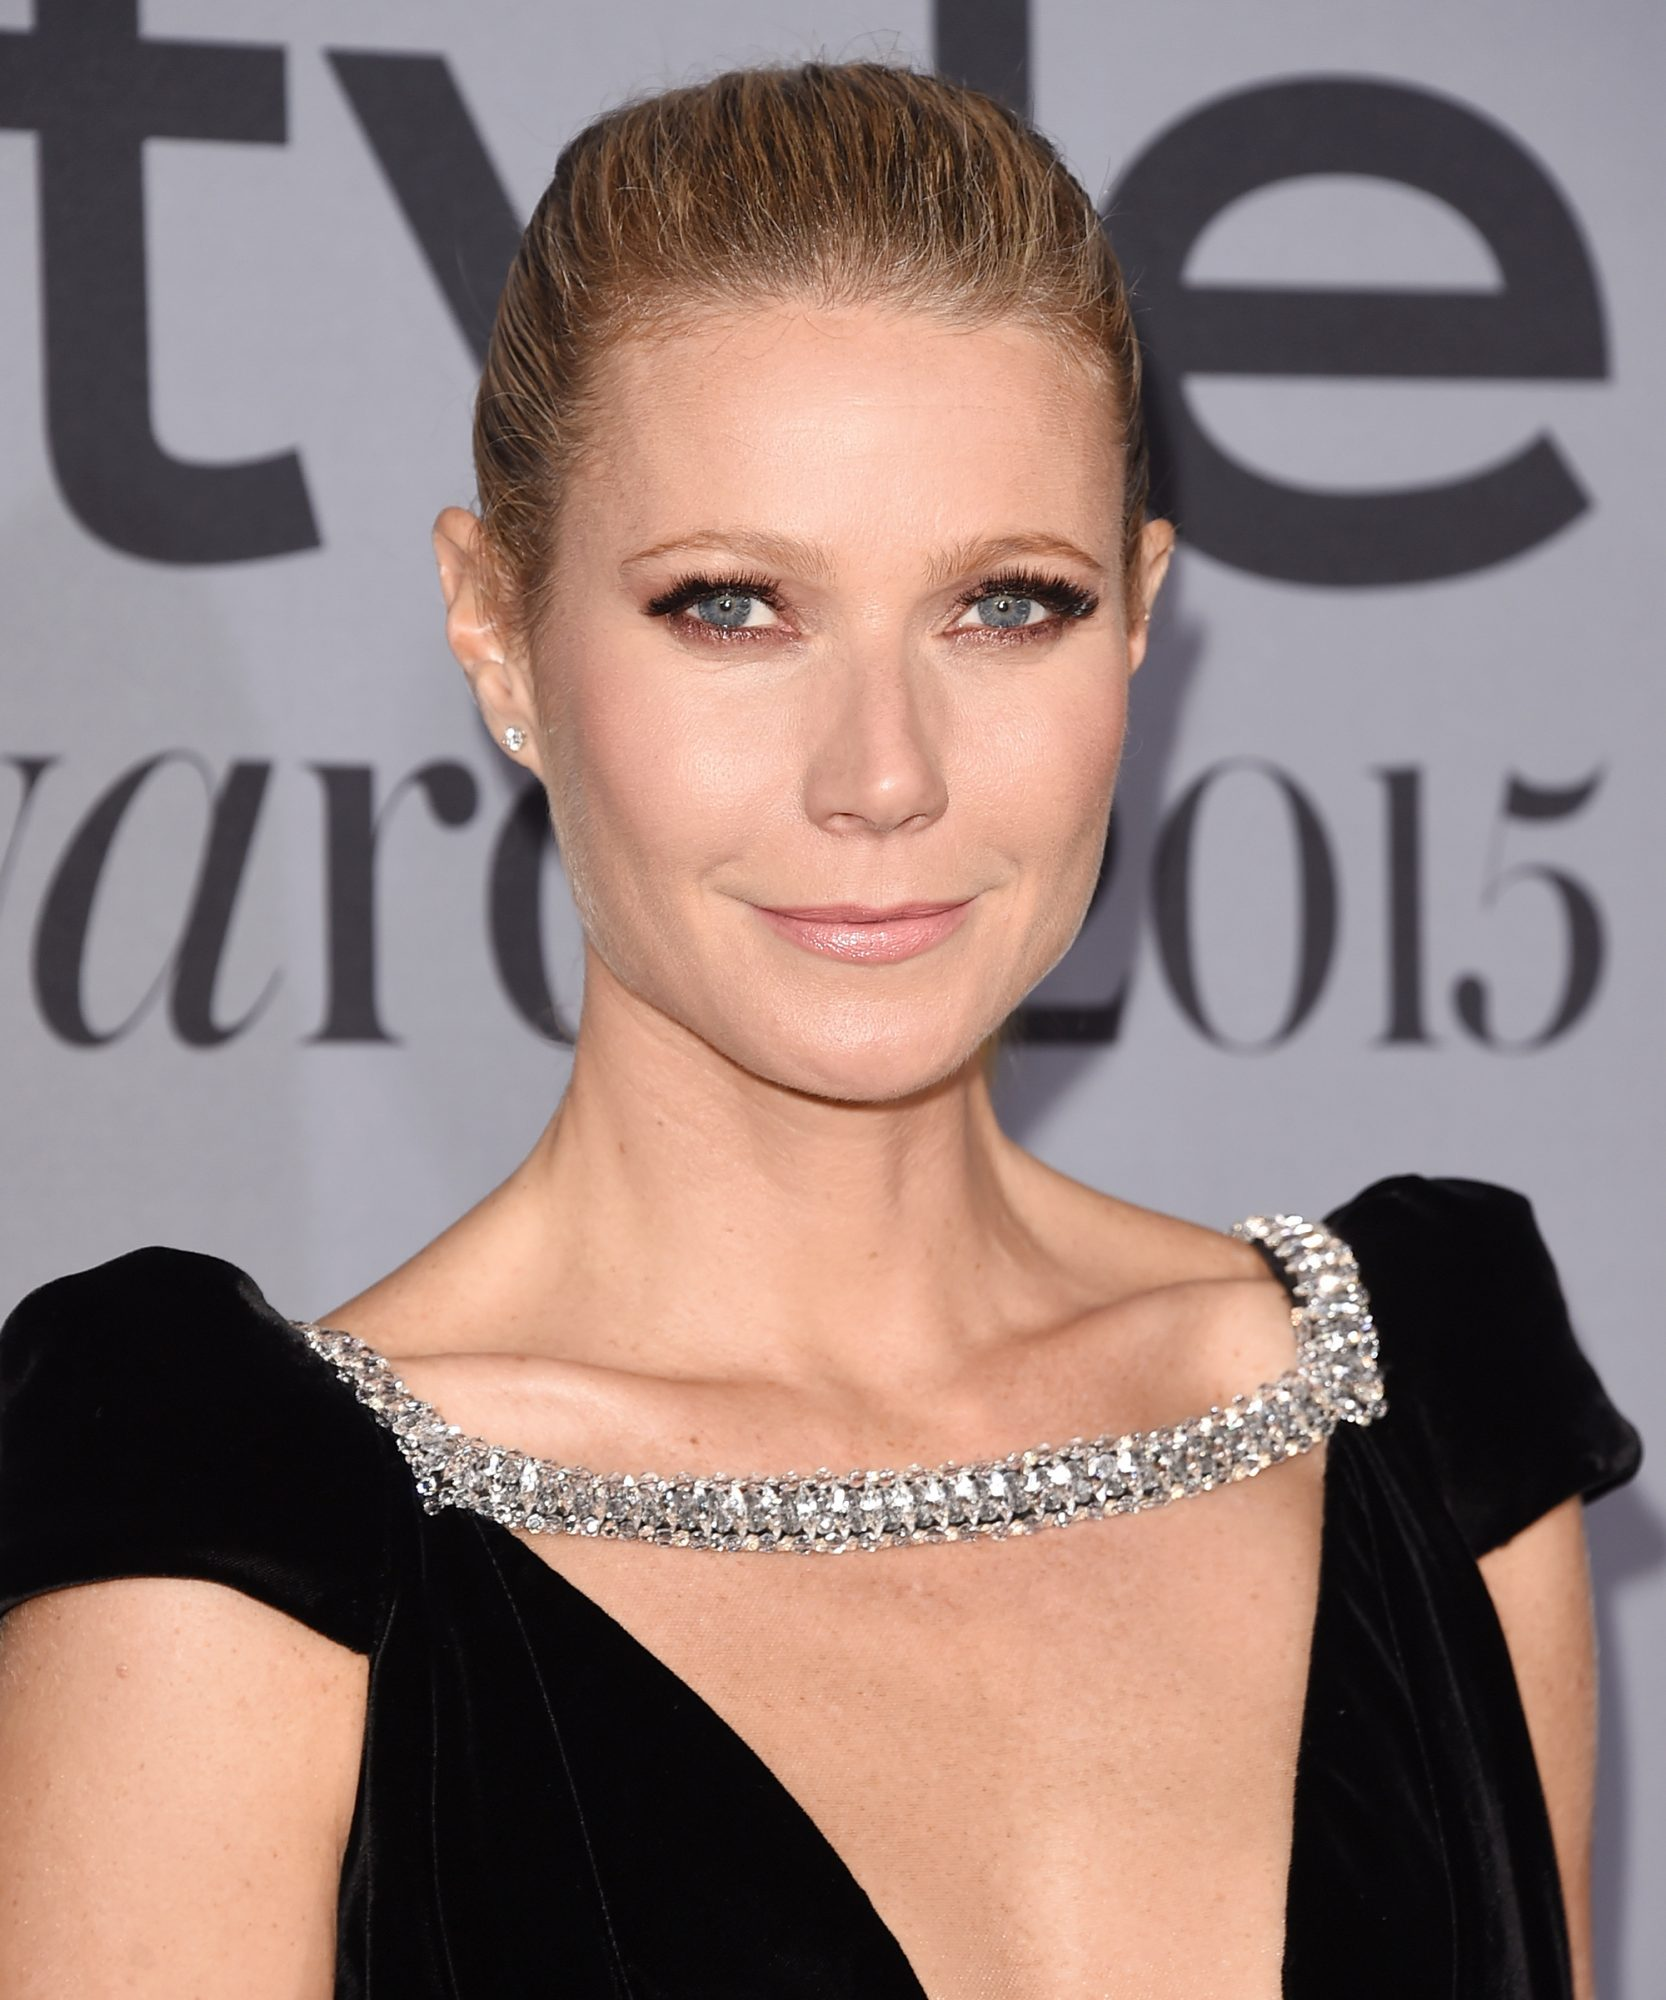 The Otherworldly Ingredient in Gwyneth Paltrow's Go-To Smoothie Recipe? Moon Dust